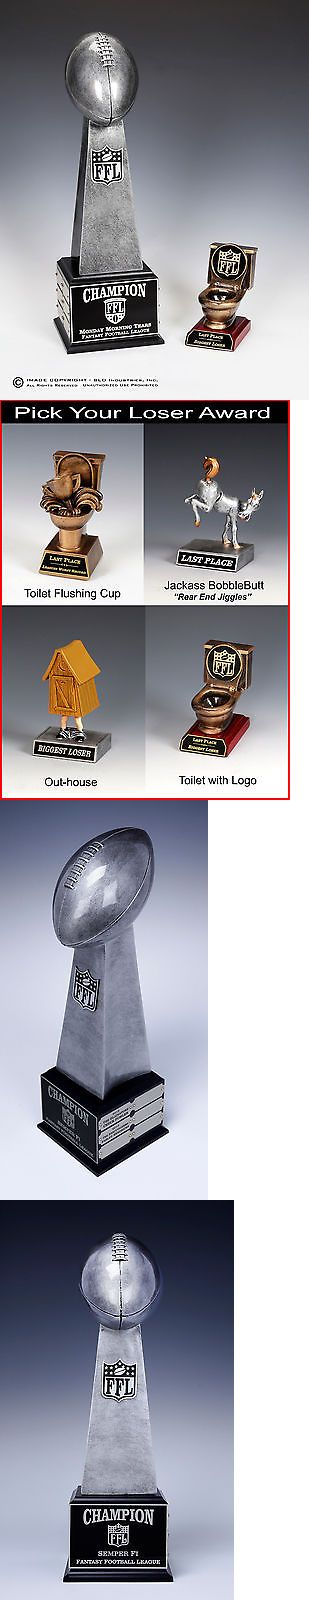 Other Football 2024: Fantasy Football Perpetual Trophy Lombardi,Combo, Loser, Last Place Award Toliet -> BUY IT NOW ONLY: $86.9 on eBay!